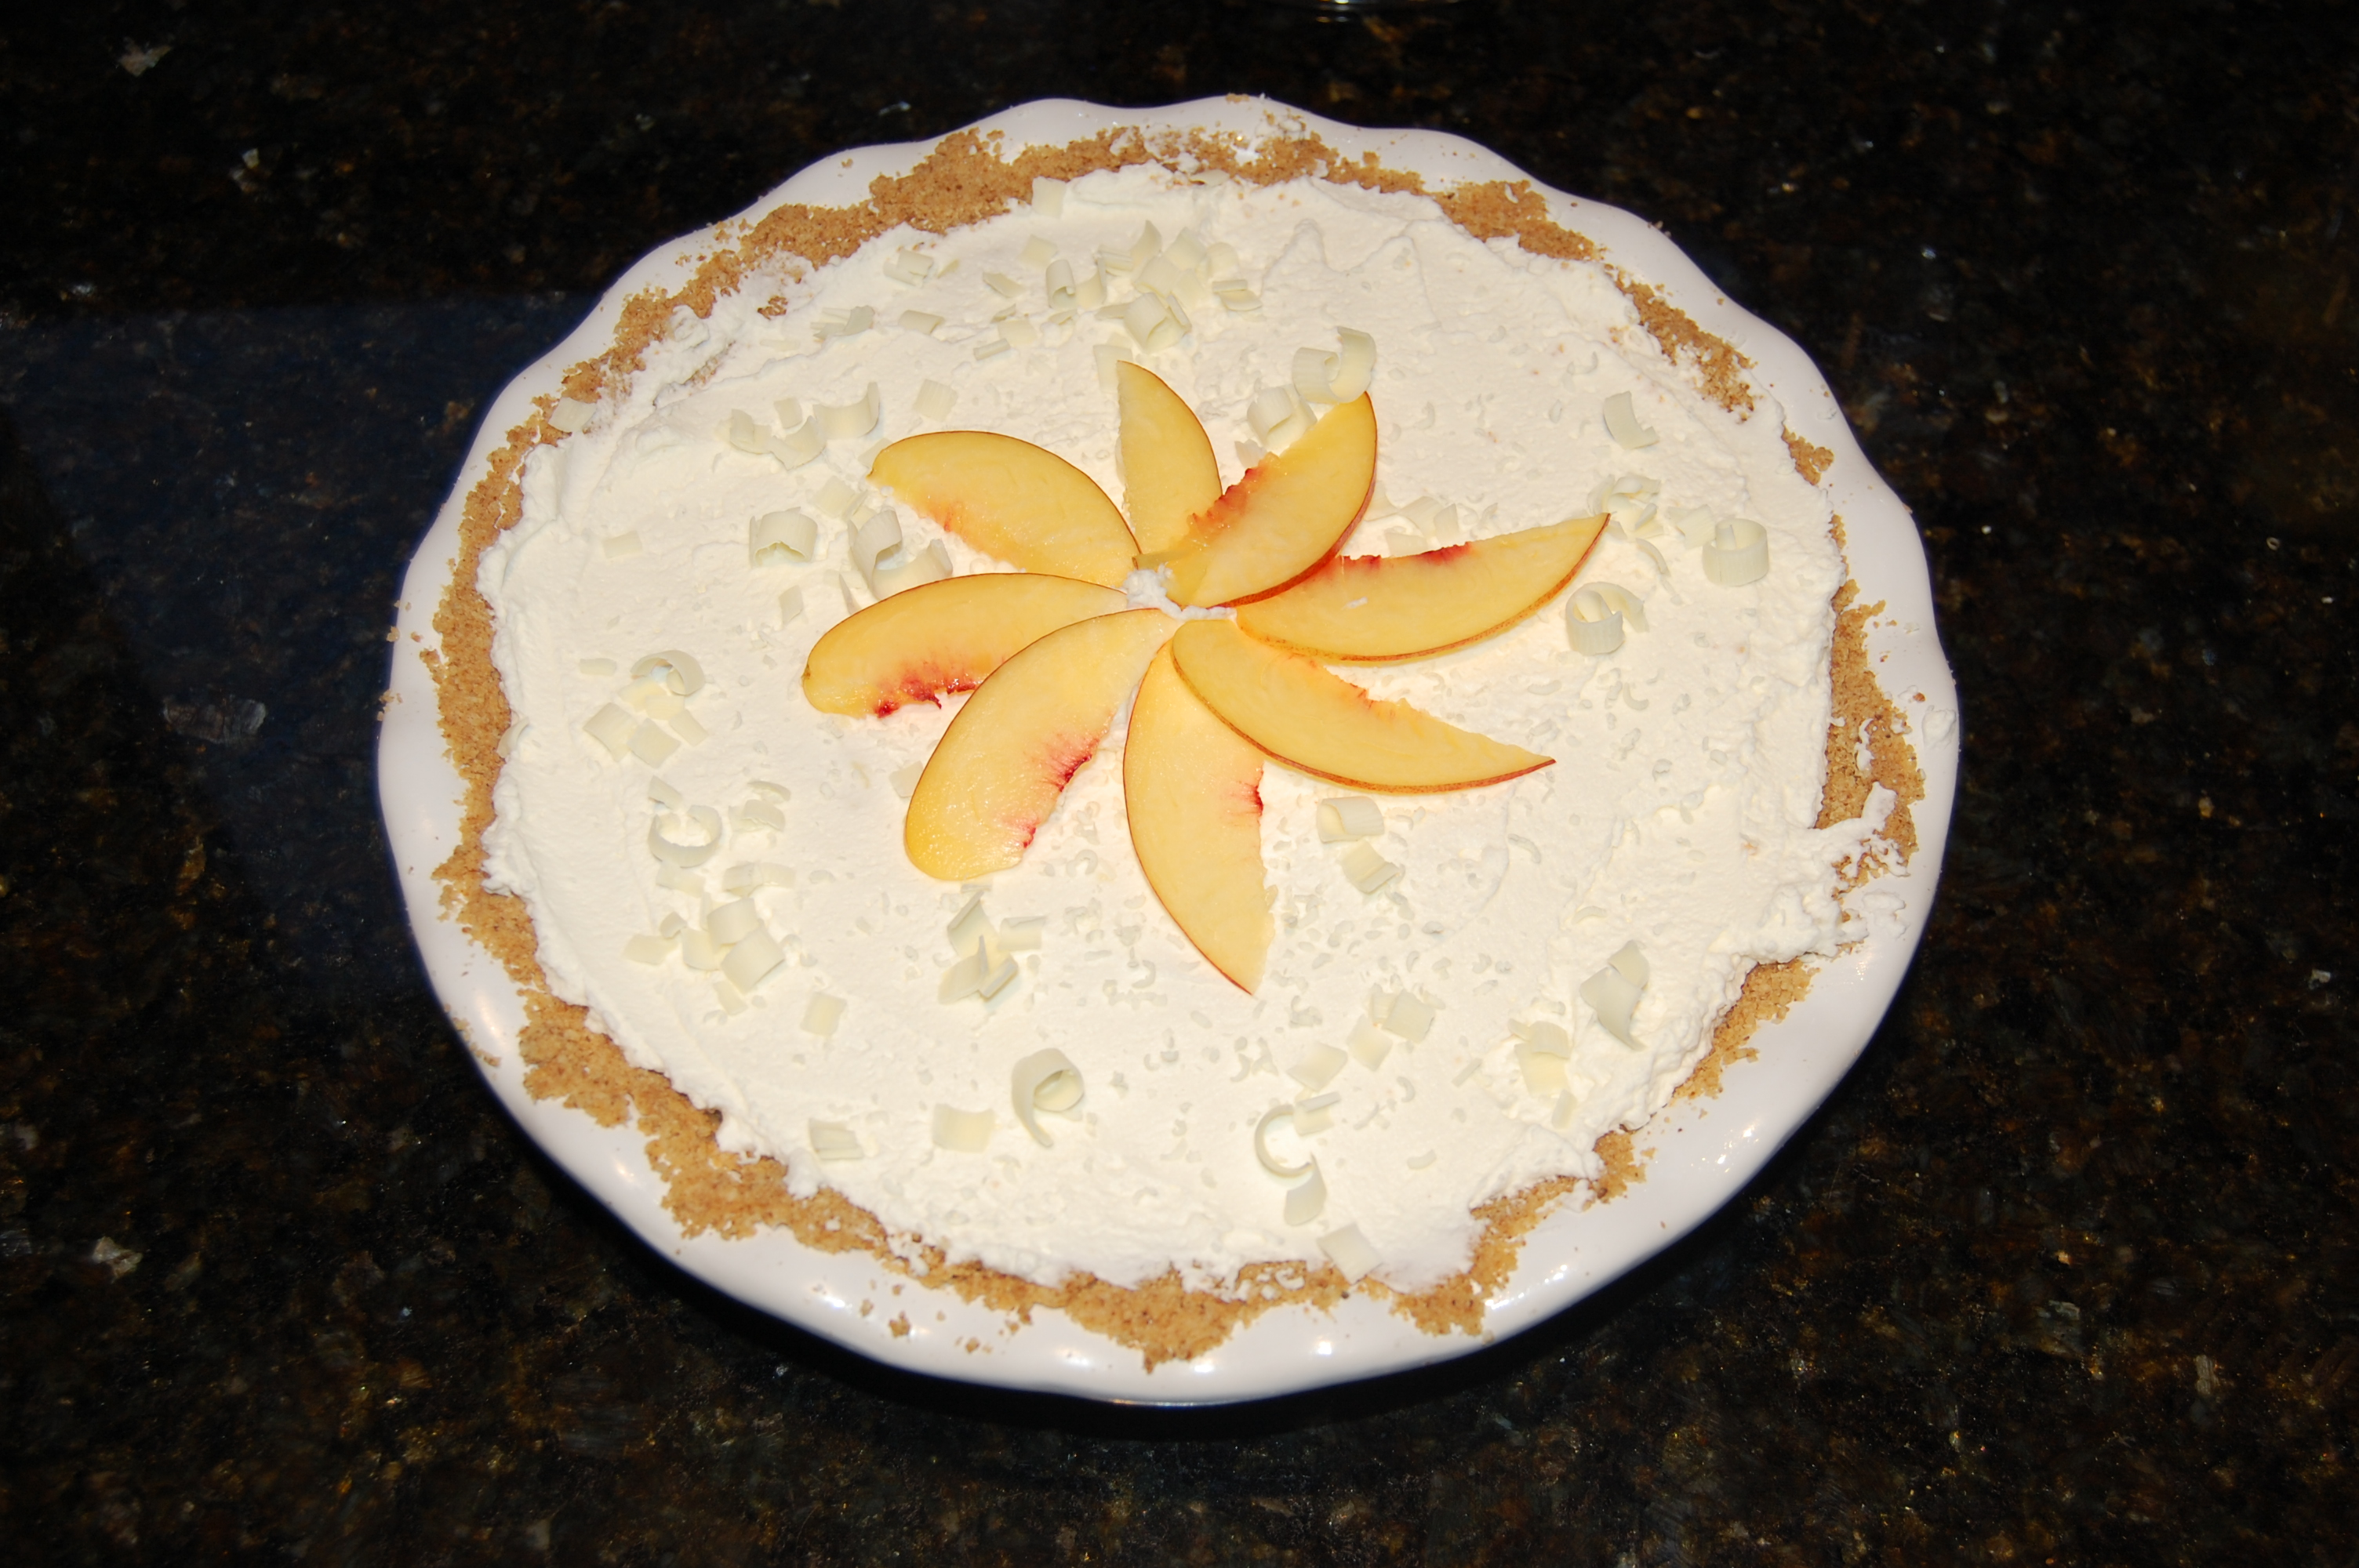 Joshua Kennon Finished Nectarine White Chocolate Cream Pie Recipe for Dessert